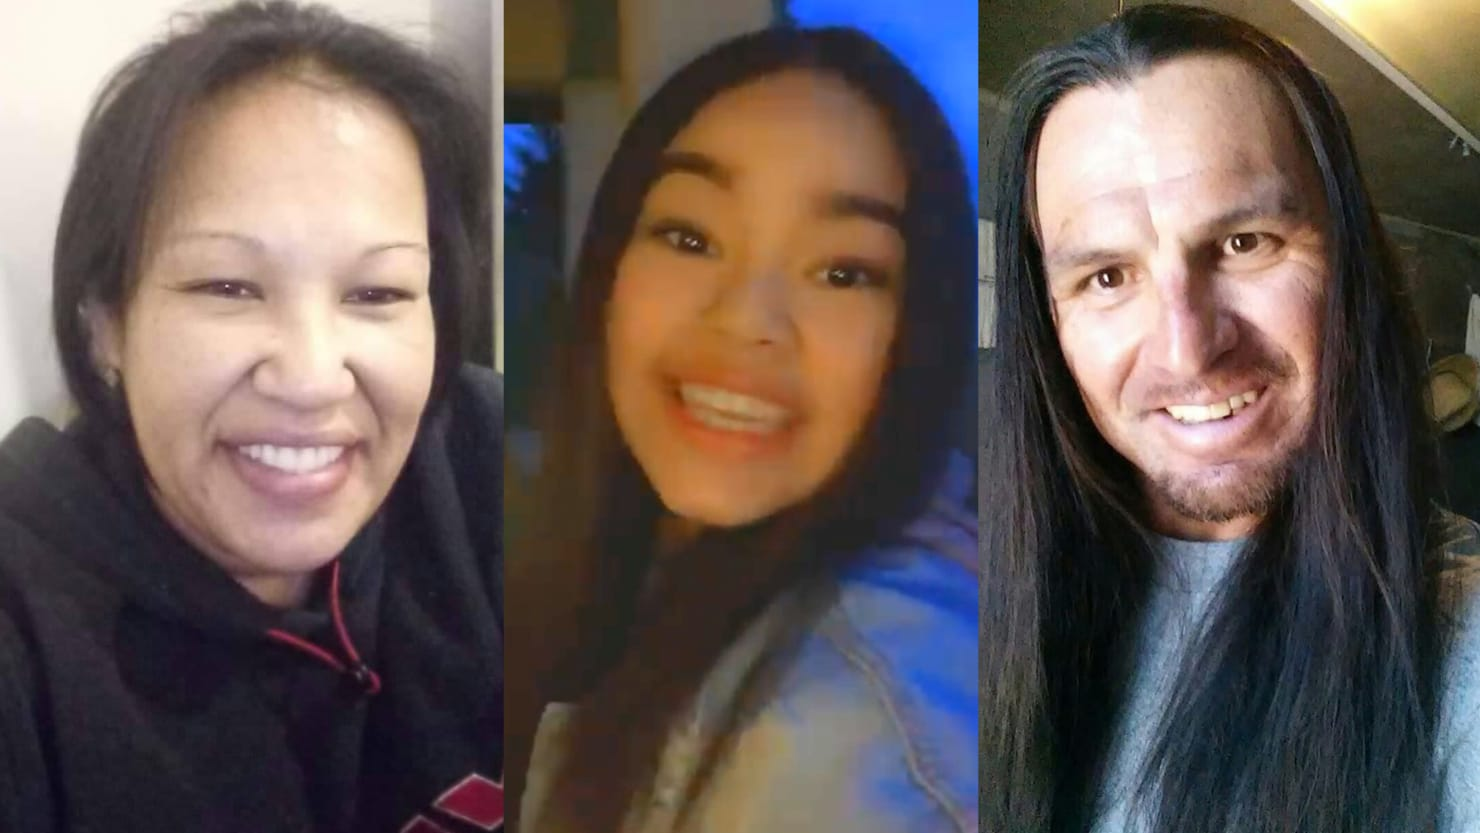 The Shocking Family Triple Murder Case Roiling Humboldt County